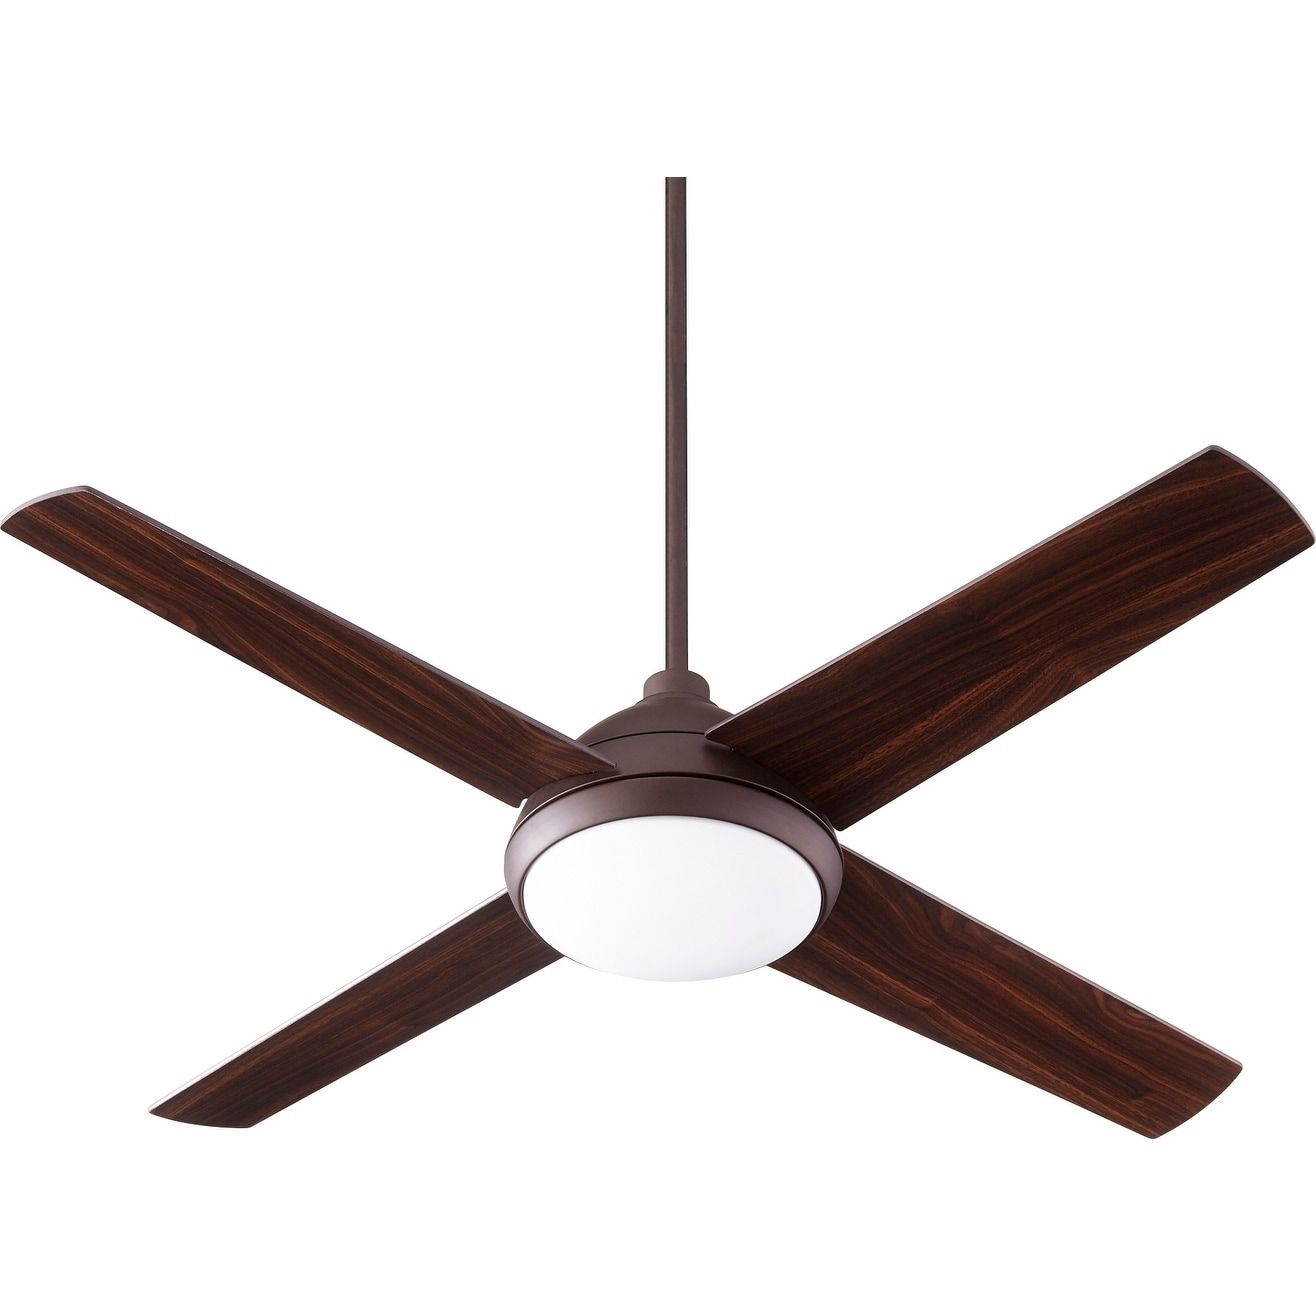 International Quest Led 52 Transitional Ceiling Fan With Integraded Light Kit Polished Nickel Wood